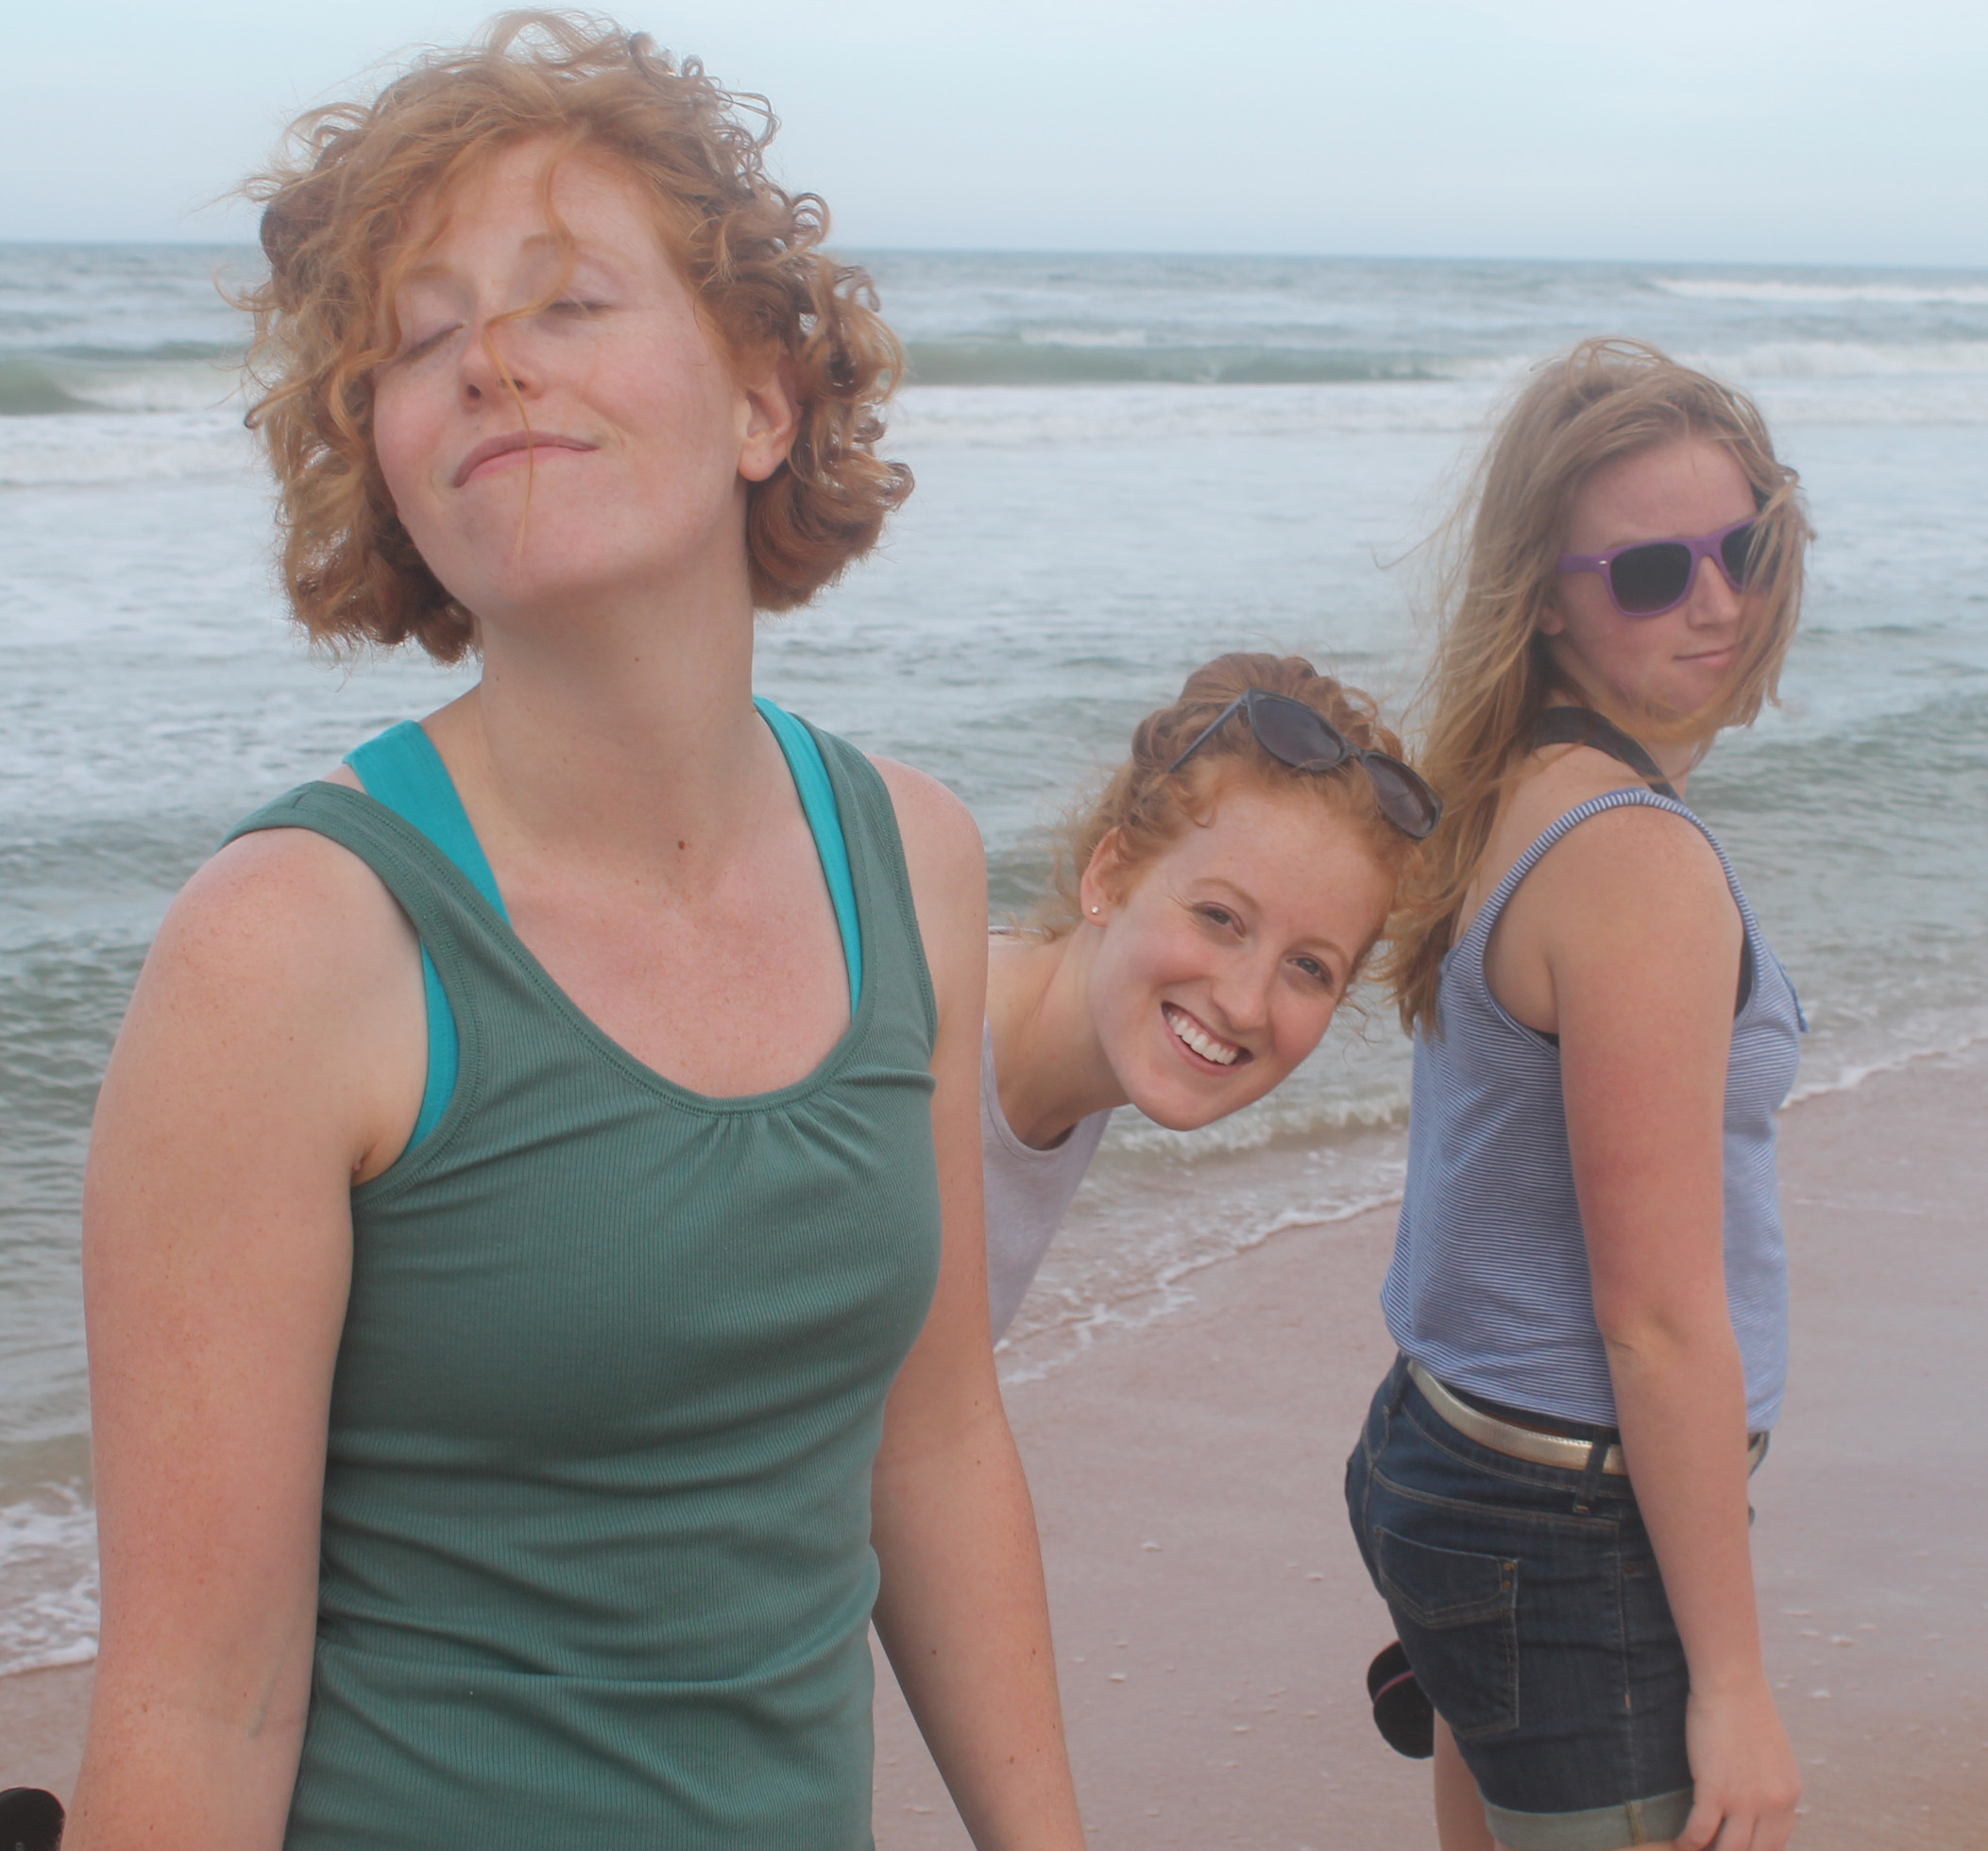 Girls silly at beach